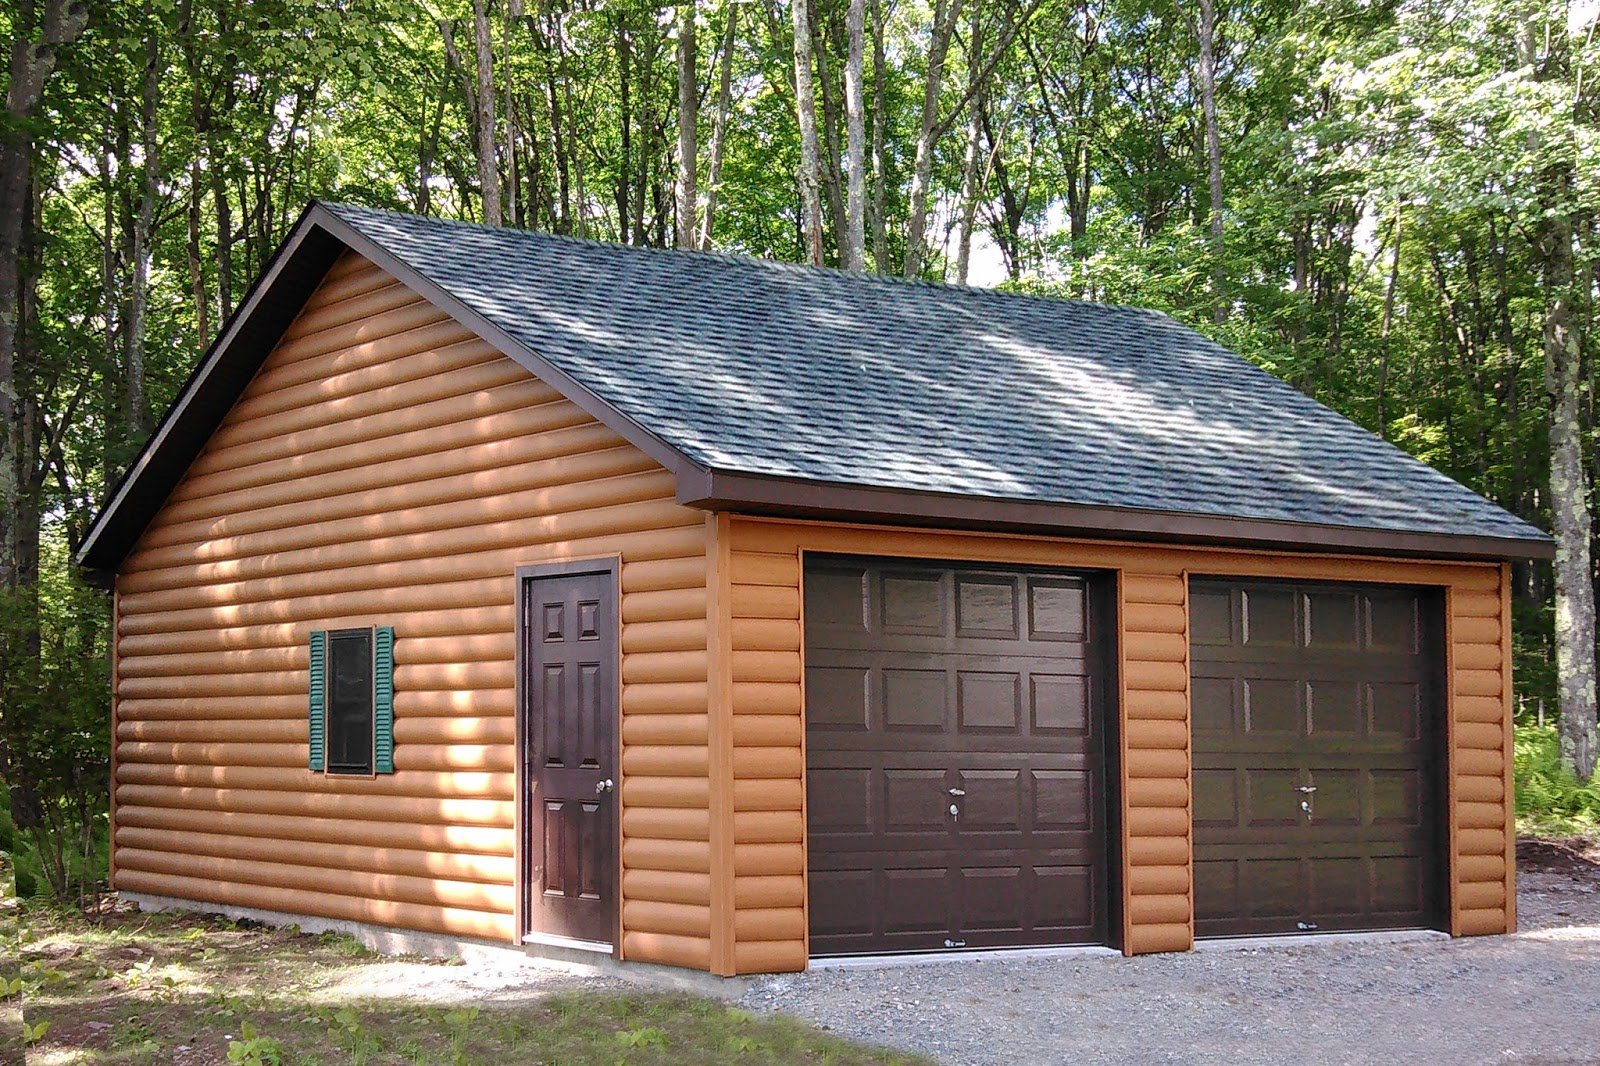 Prefab car garages for sale in pa nj ny ct de md va for Garage styles pictures